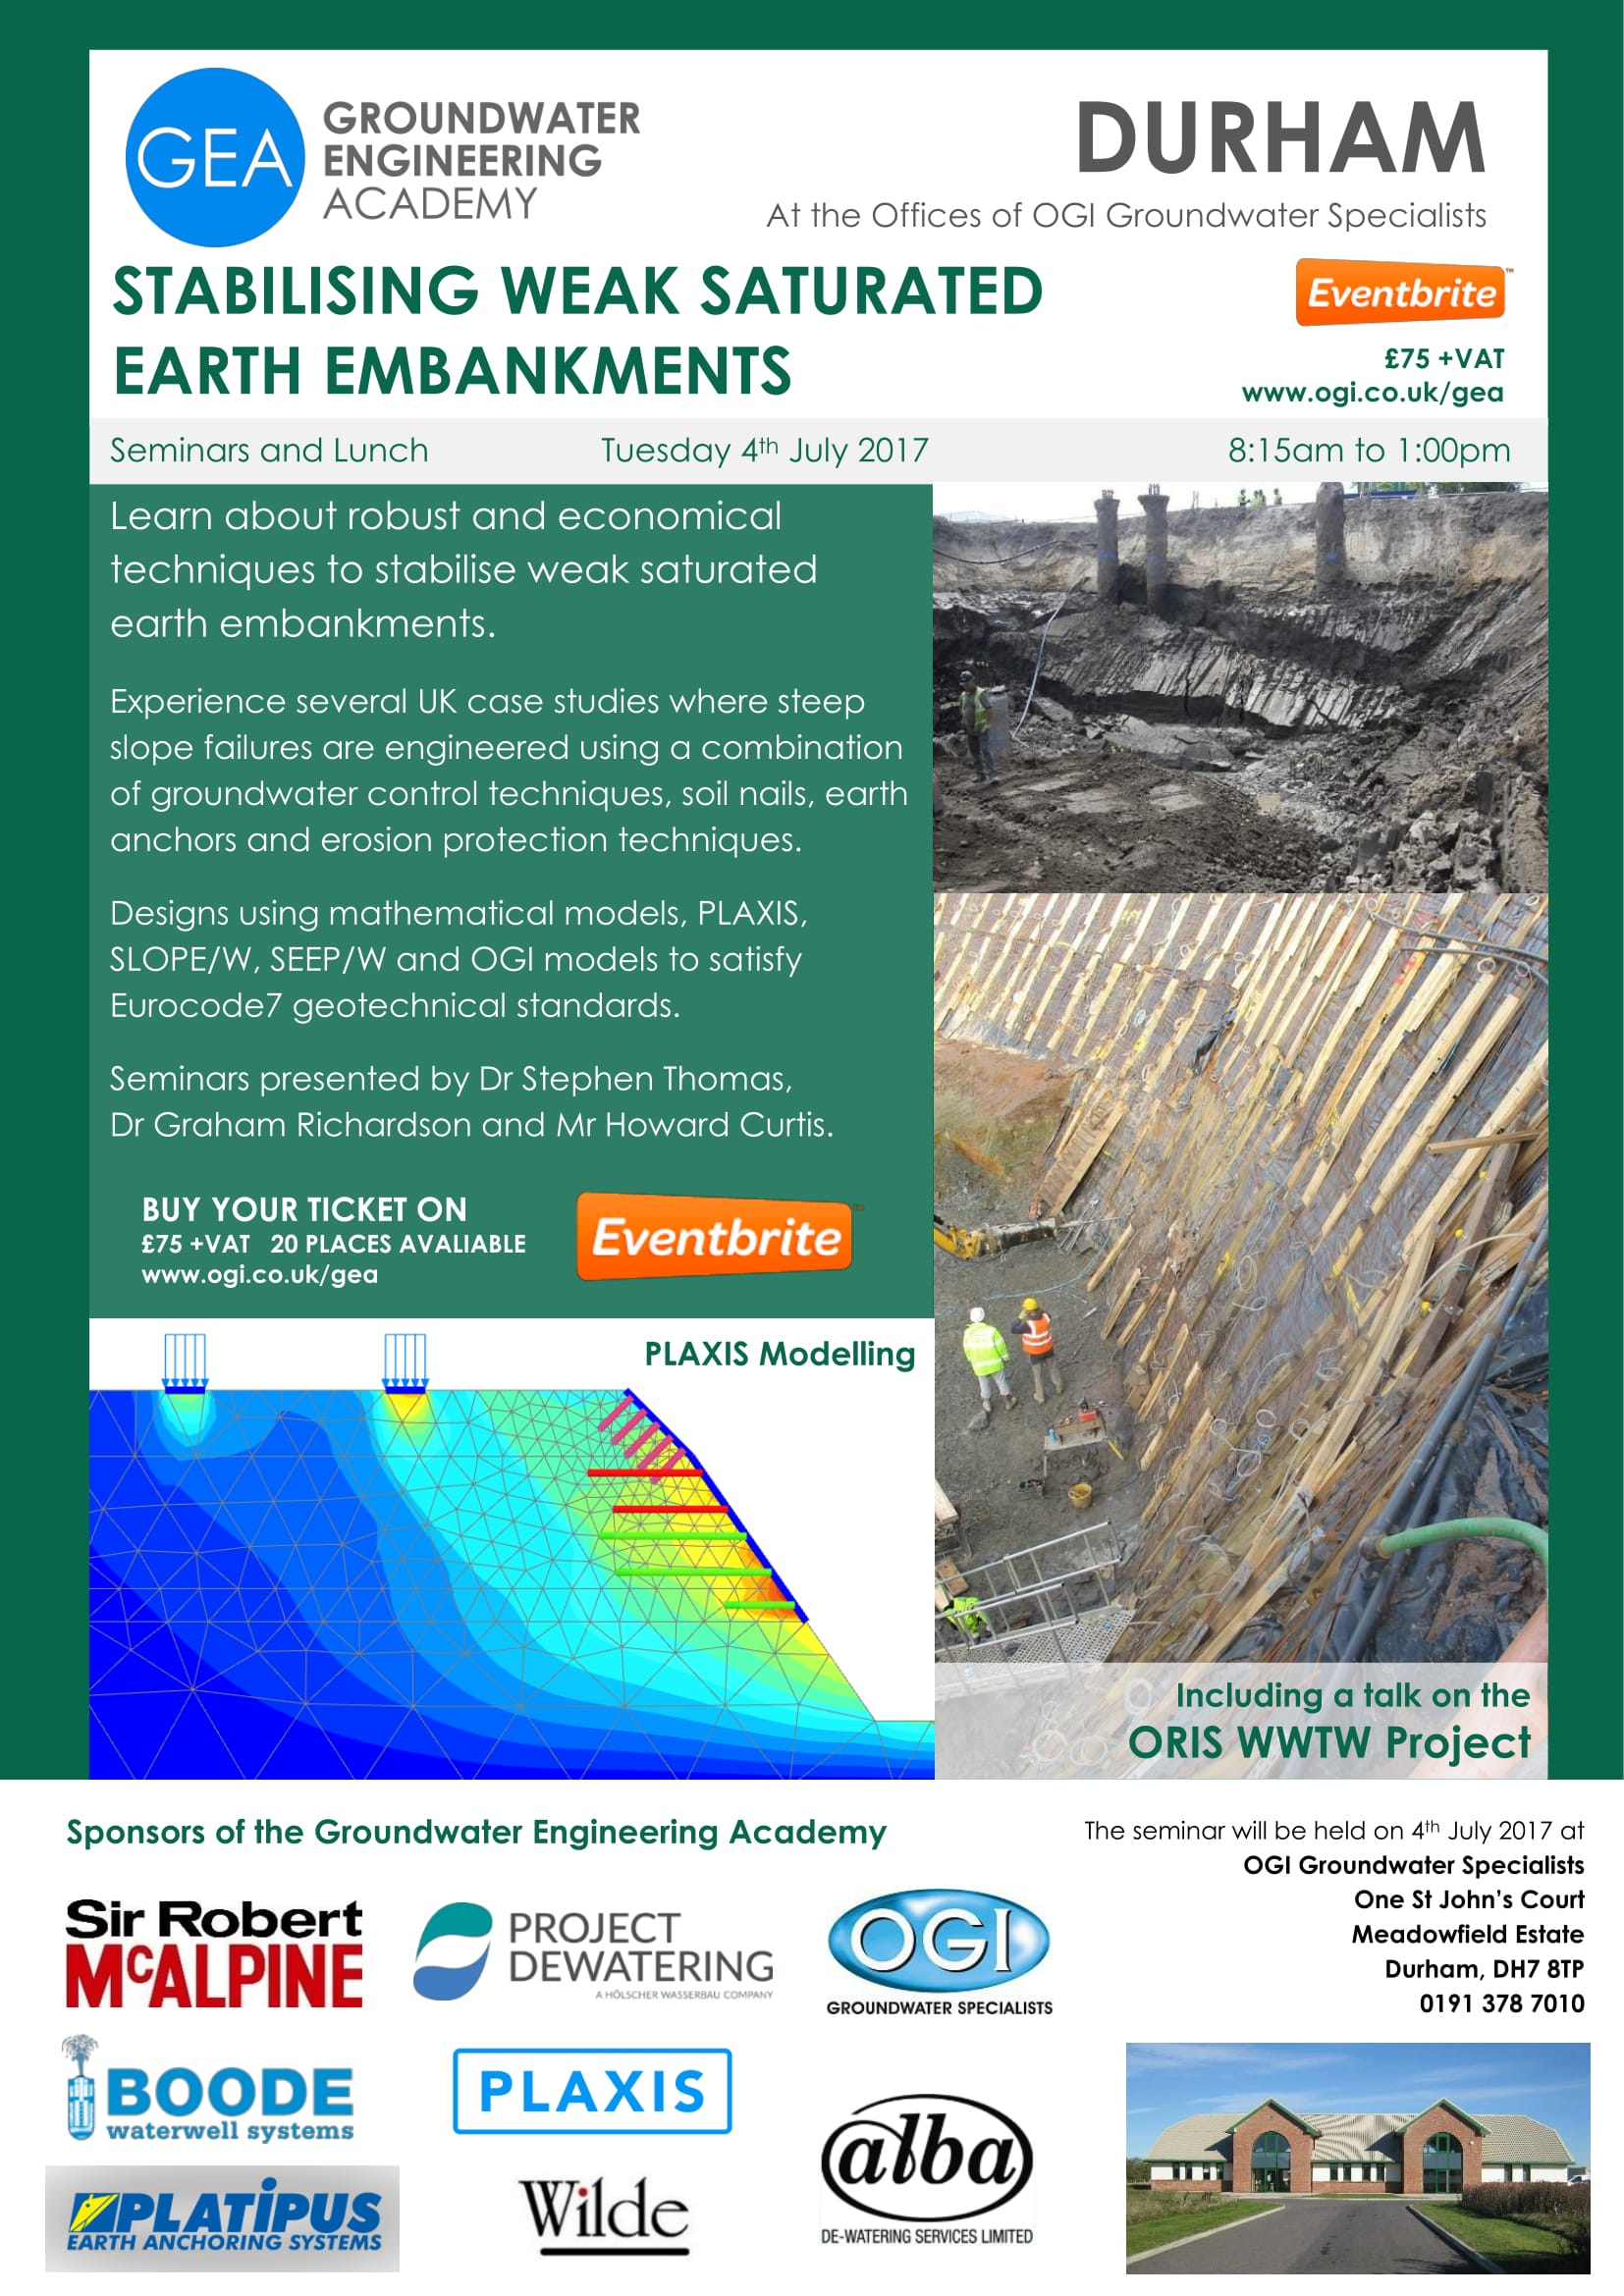 Details of the GEA Seminar on 4 July 2017 at OGI head office in Durham. Stabilising Weak Saturated Earth Embankments.